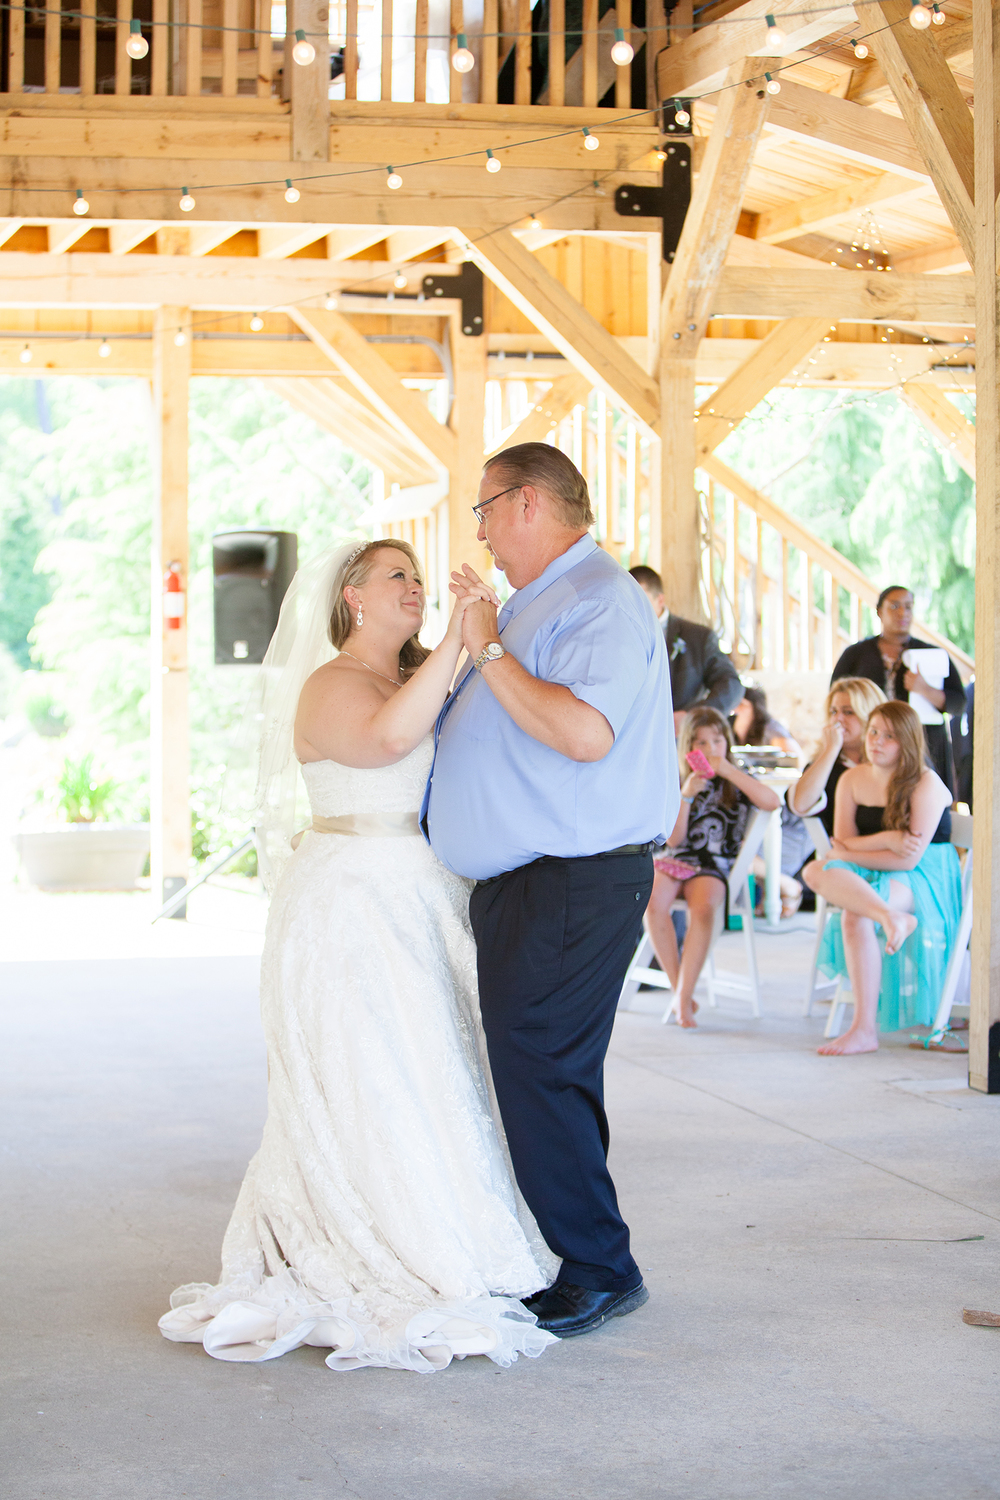 Father + Daughter Dance at a Reception